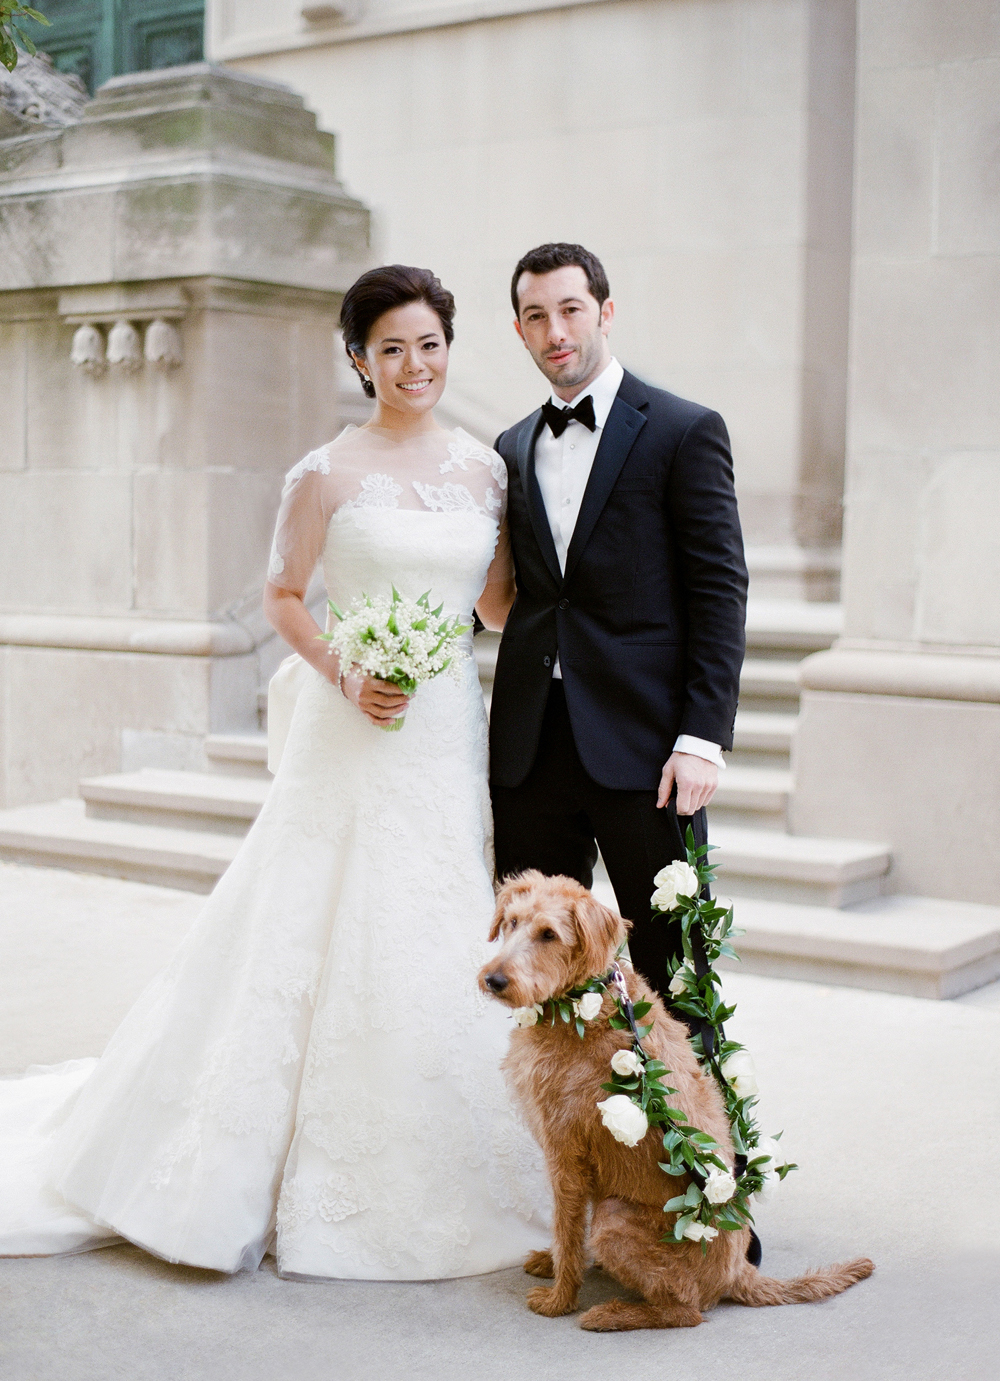 bride in vera wang and groom in ralph lauren stand with dog ring bearer on garland leash